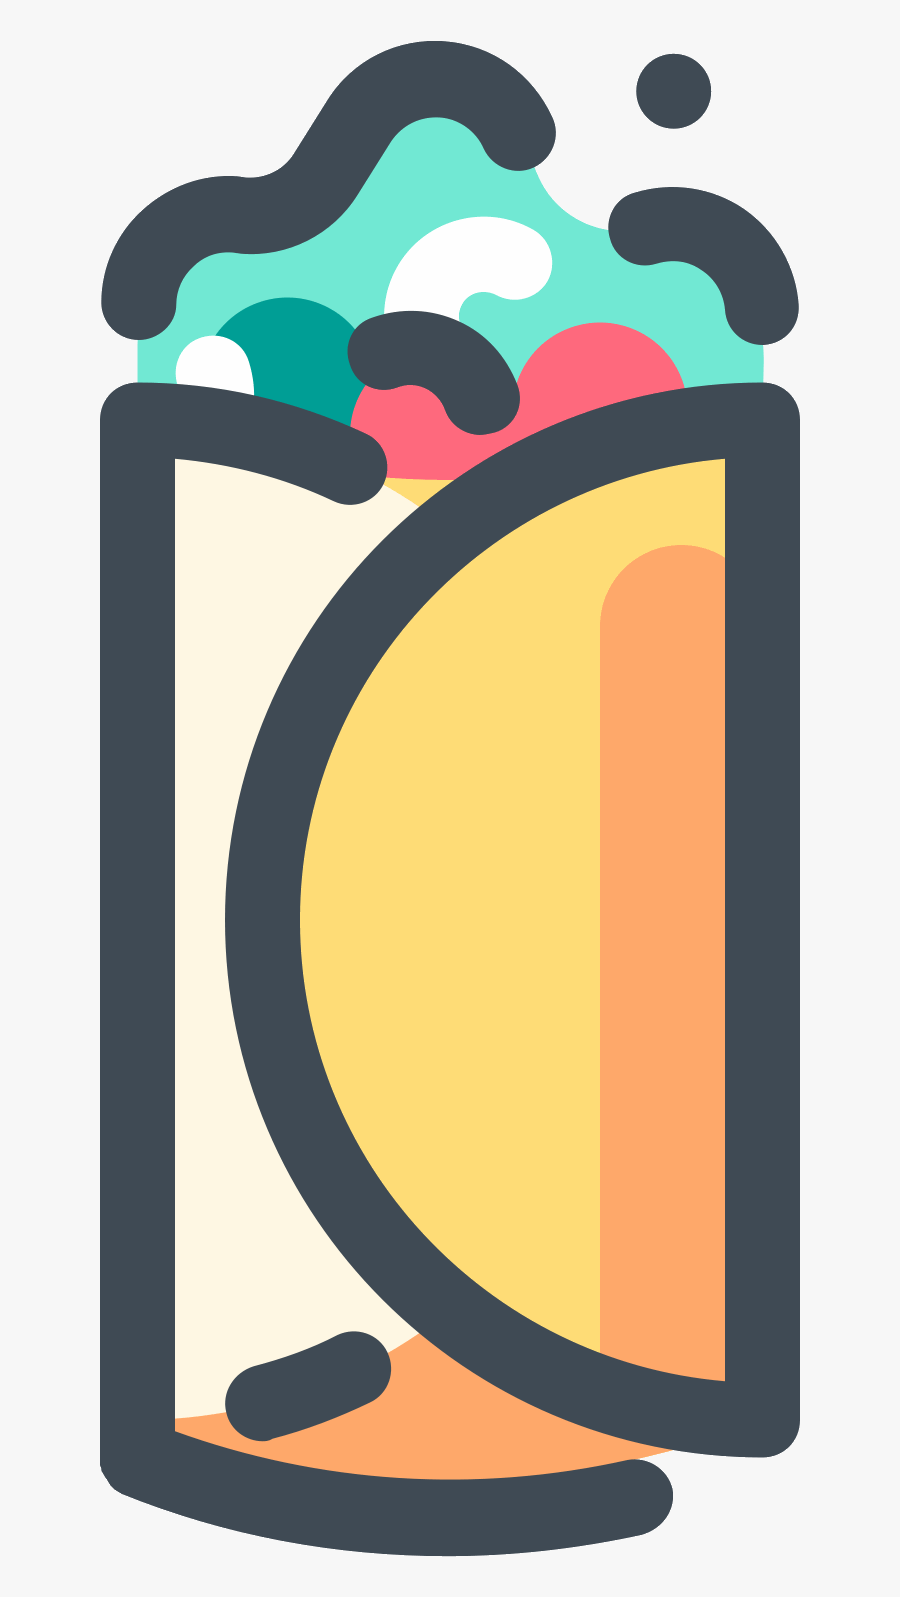 There Is An Oblong Food Object Made Up Of A Tortilla - Food Icon Png, Transparent Clipart